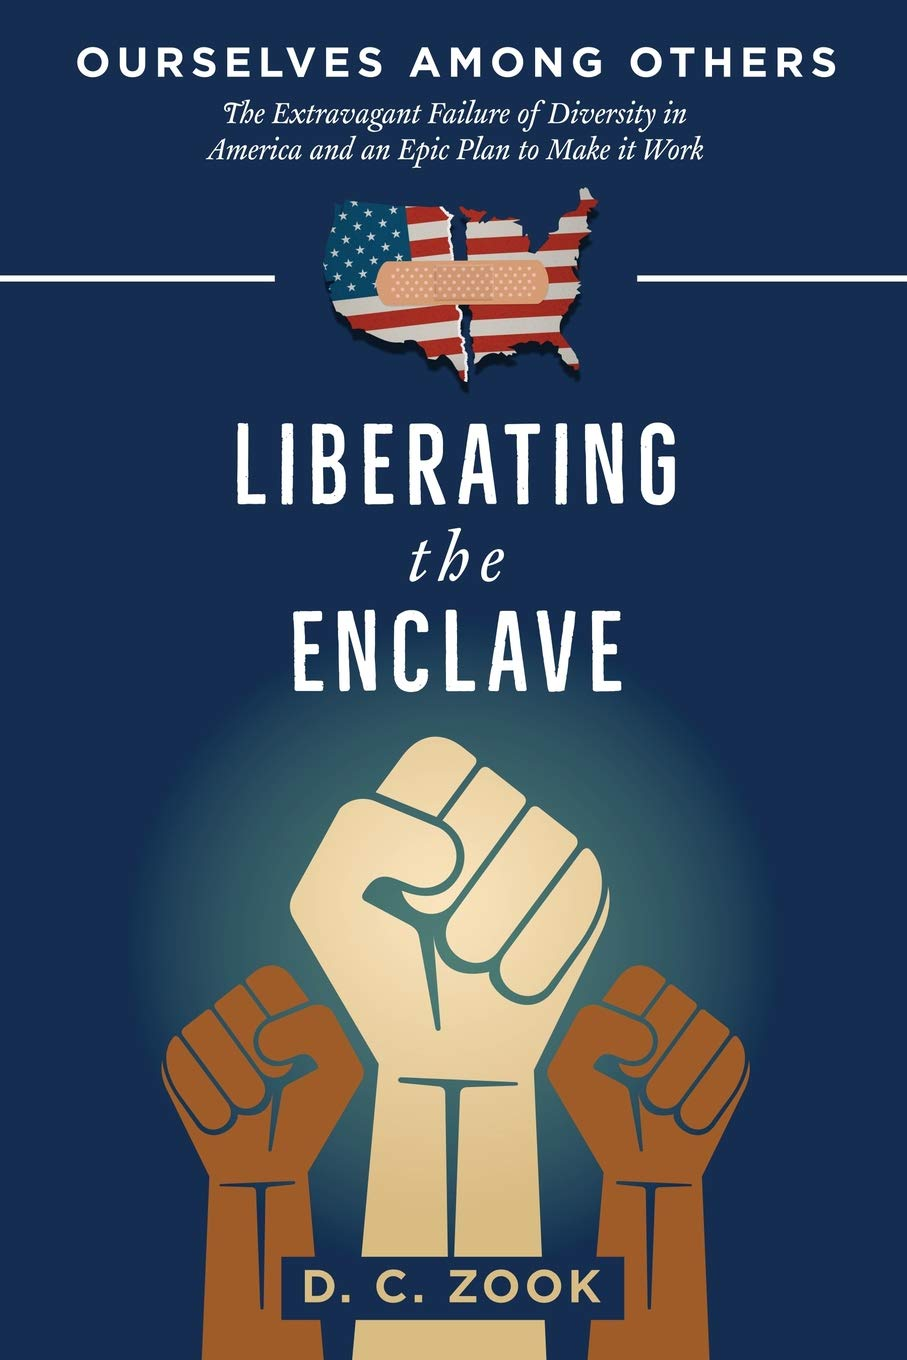 Download Liberating the Enclave (Ourselves Among Others: The Extravagant Failure of Diversity in America and An Epic Plan to Make It Work) (Volume 2) PDF